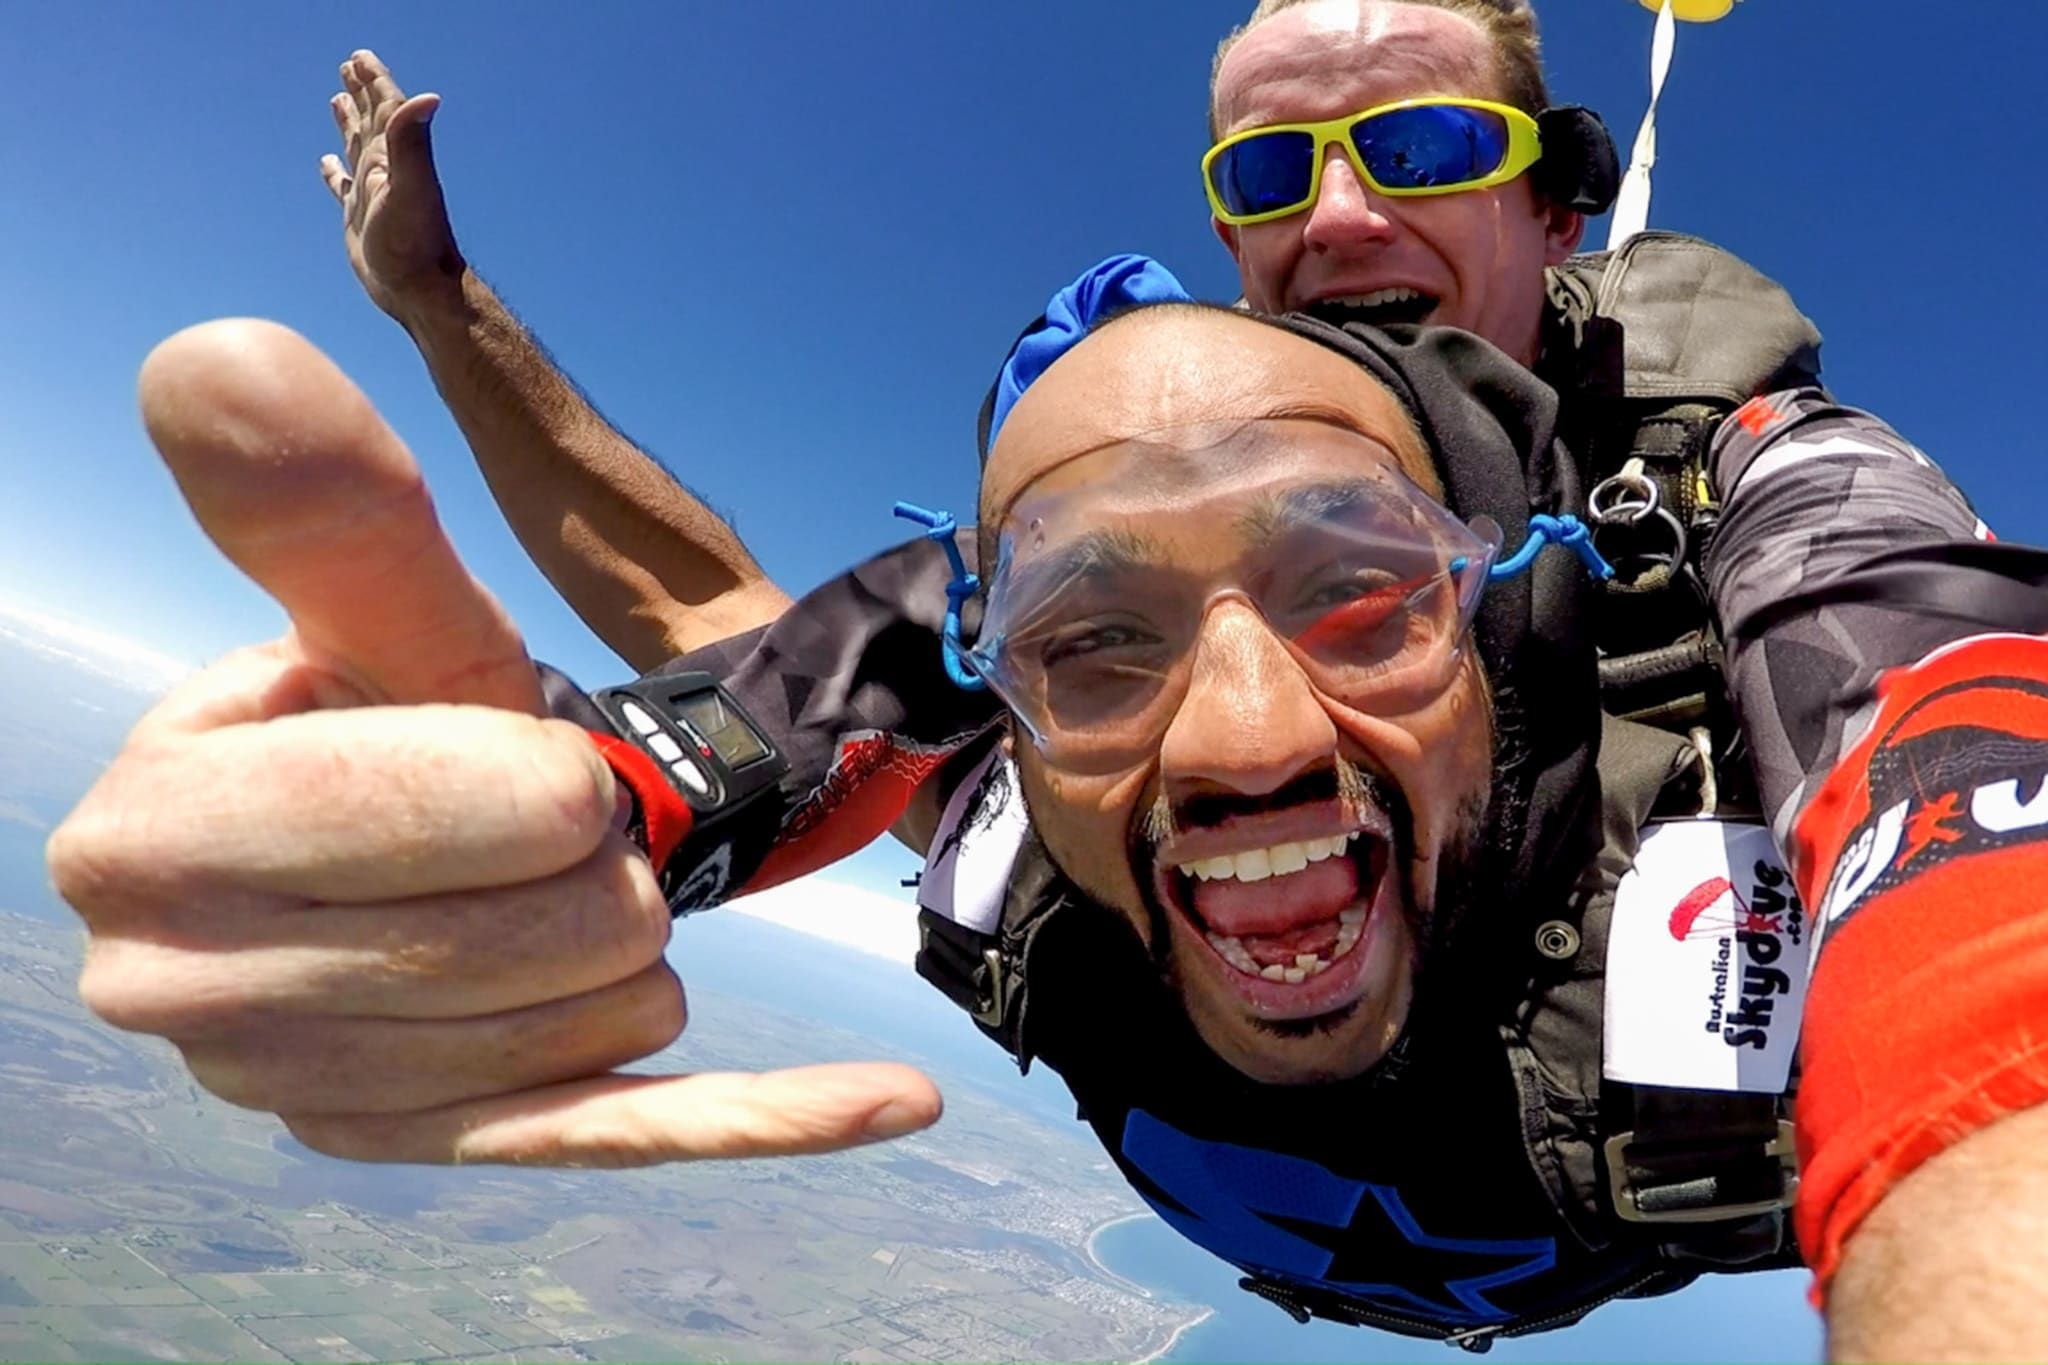 Tandem Skydive up to 12,000ft, Weekday Special - Great Ocean Road, Torquay